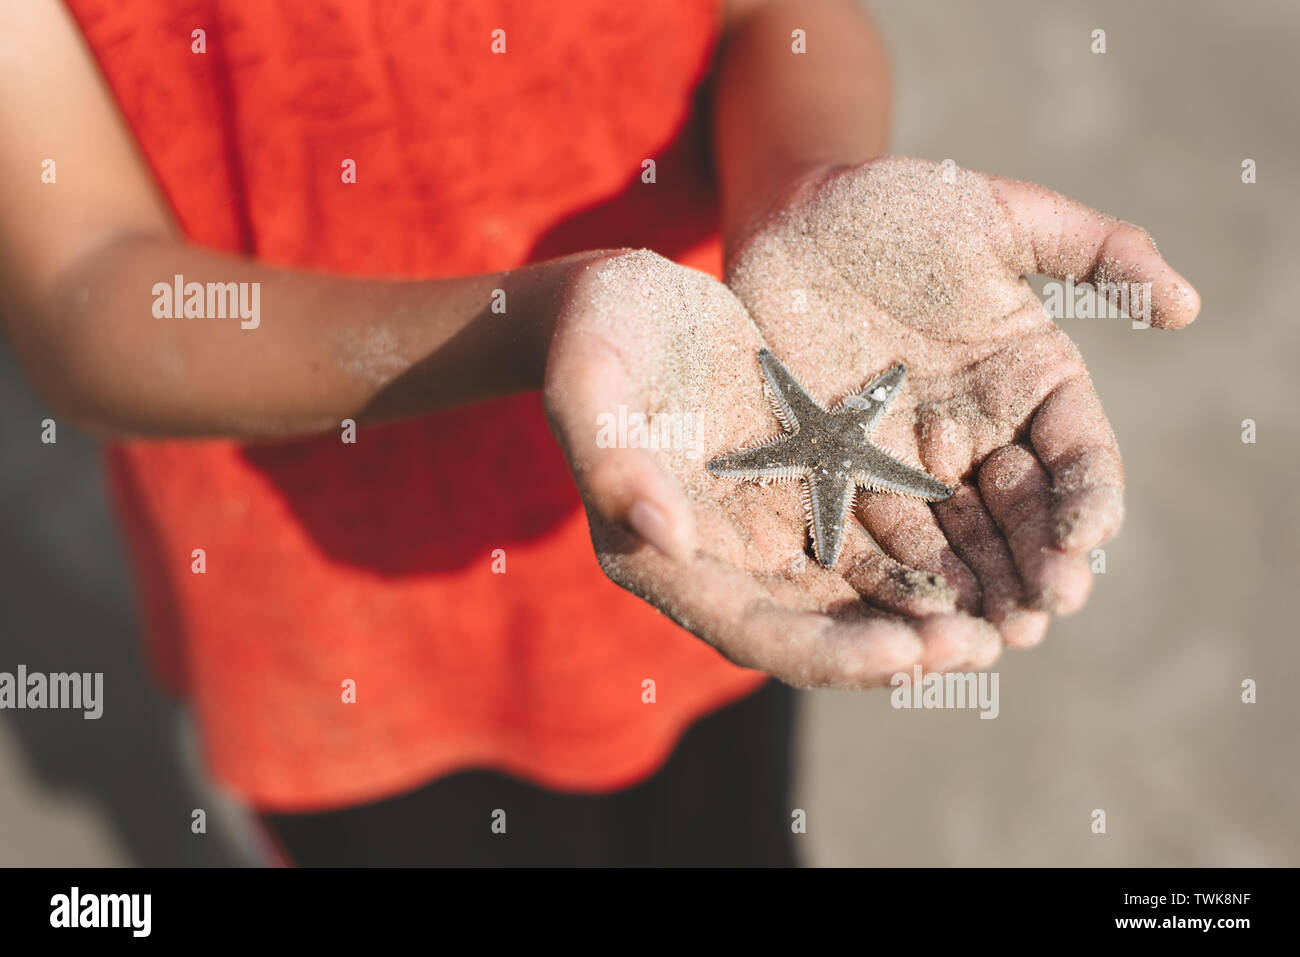 child holding or showing a starfish in a cupped hand with beach sand. concept of marine and aquatic life - Stock Image